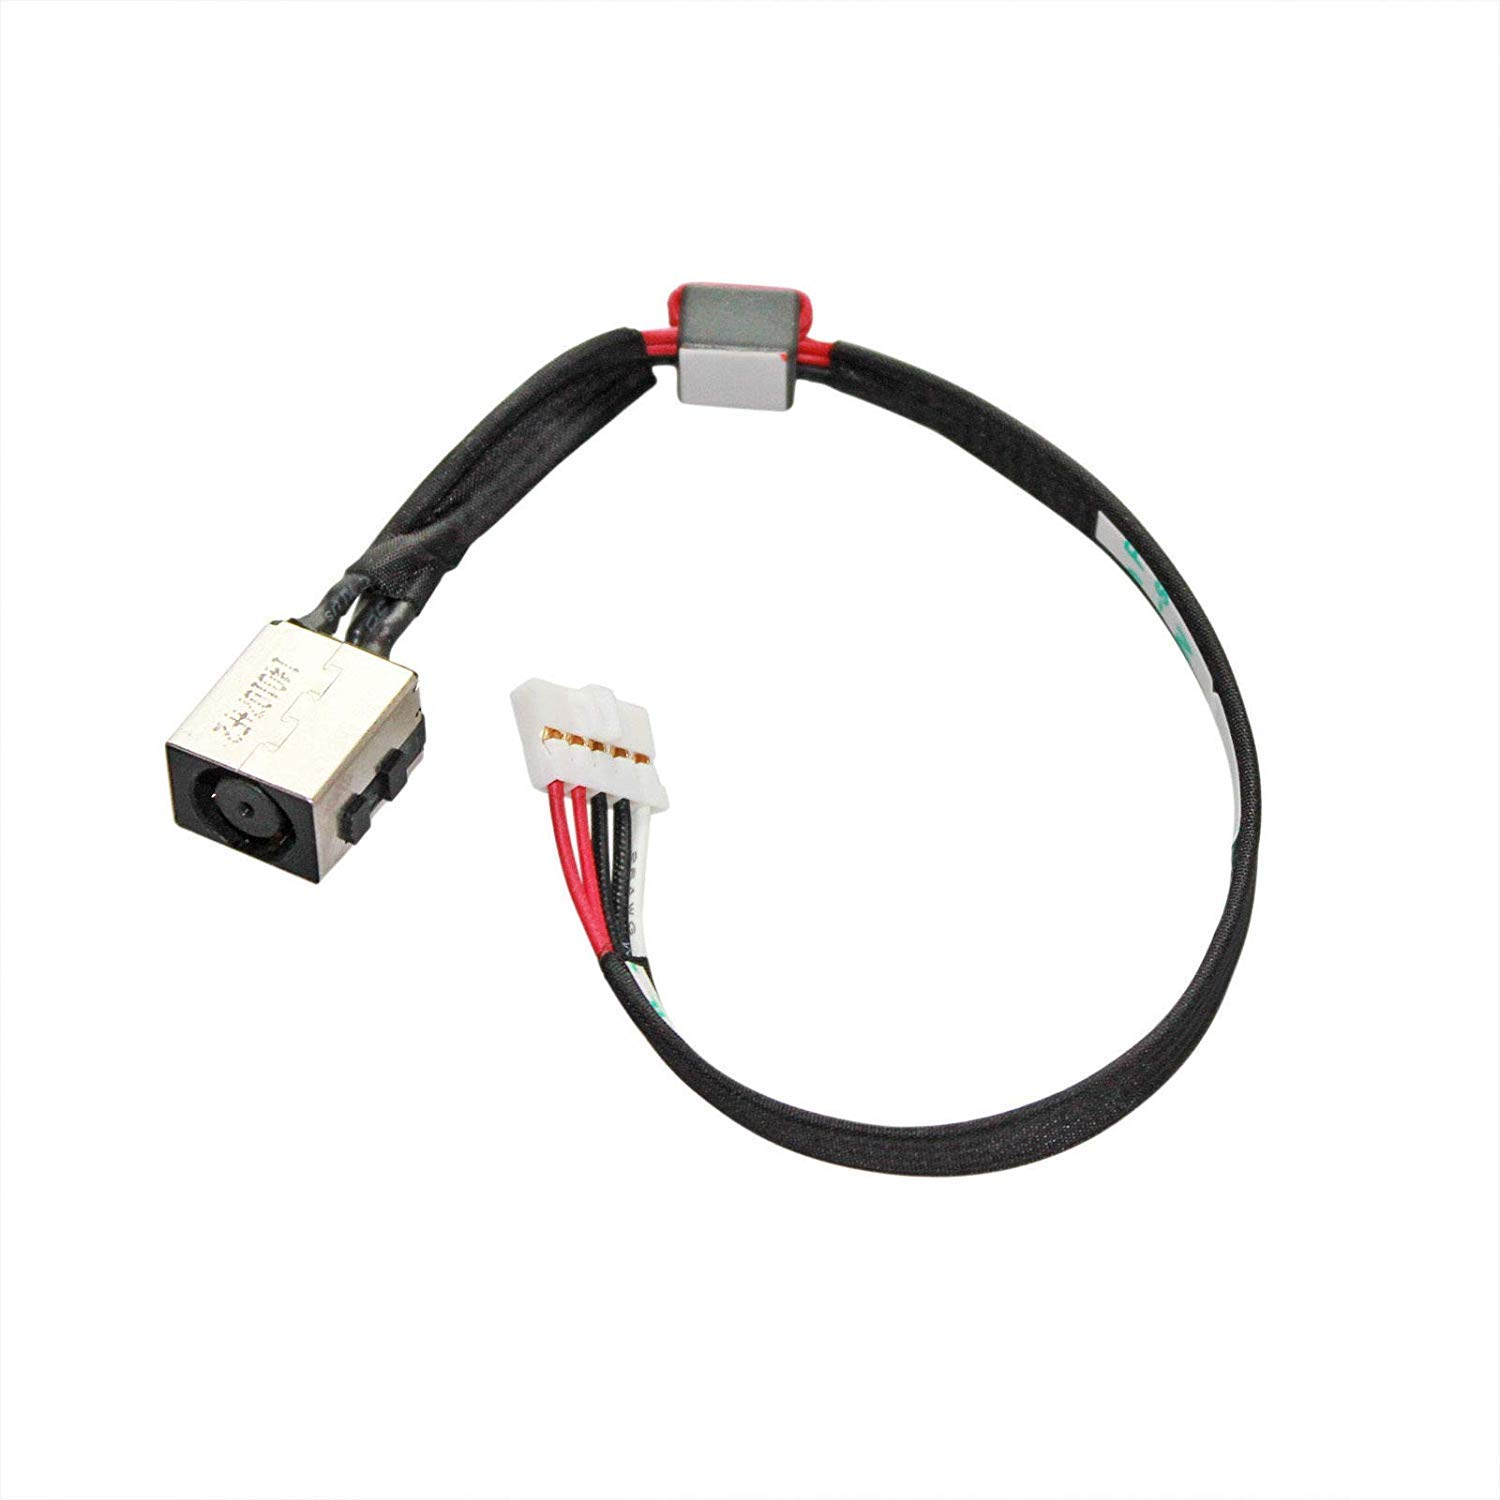 LaptopKing Replacement DC Power Jack Charging Port Socket Connector Plug with Harness Cable Plug for Dell Inspiron 15-5540 15-5542 15-5545 15-5547 15-5548 M03W3 Series 1 Year Warranty